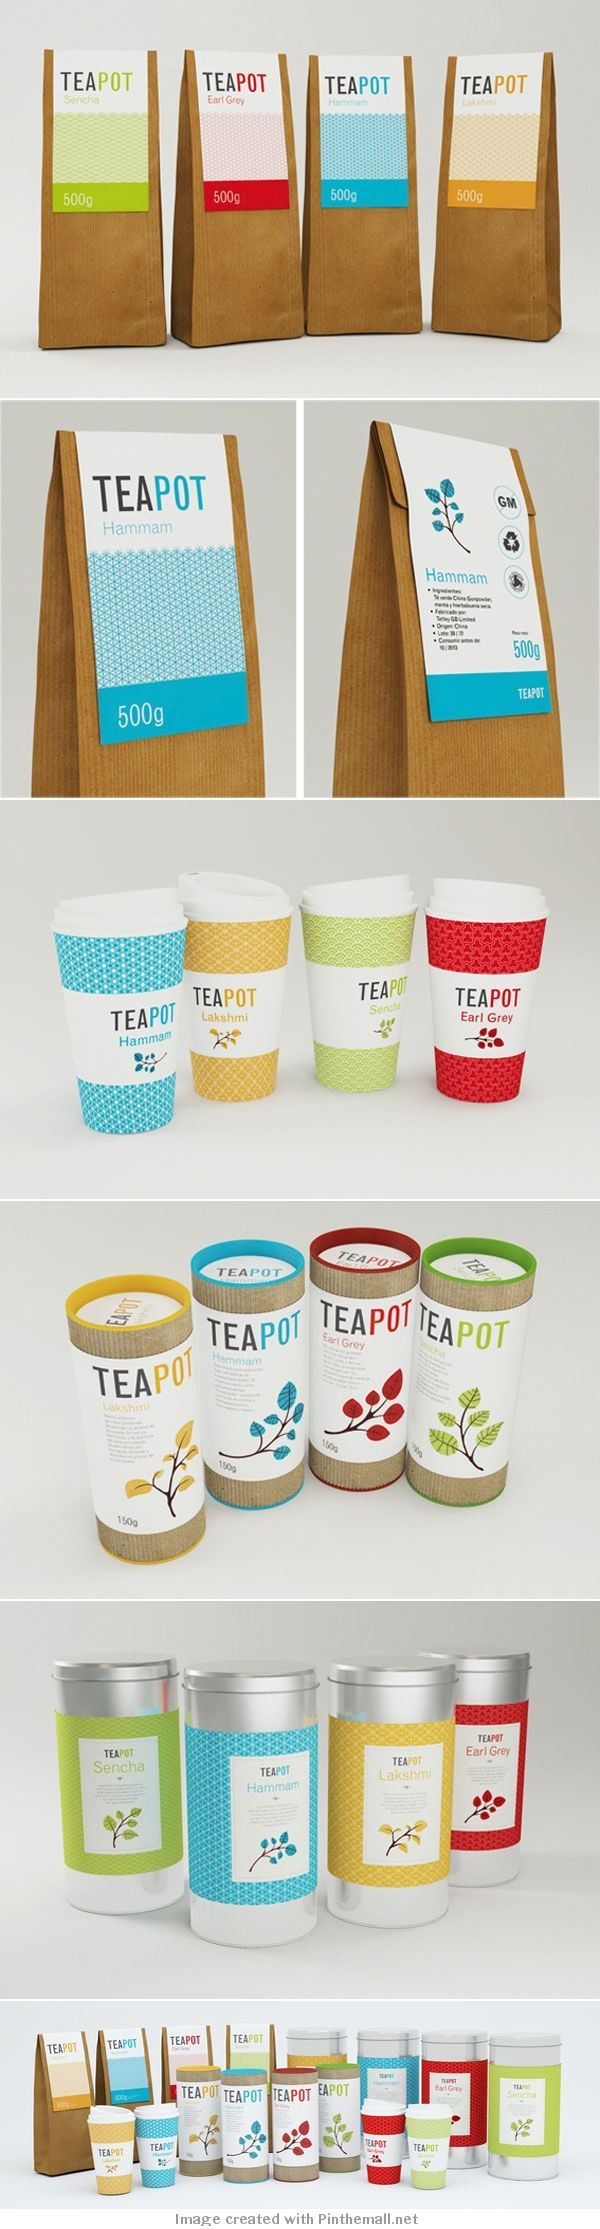 Tea packaging. Doesn't everyone need teapot #packaging PD